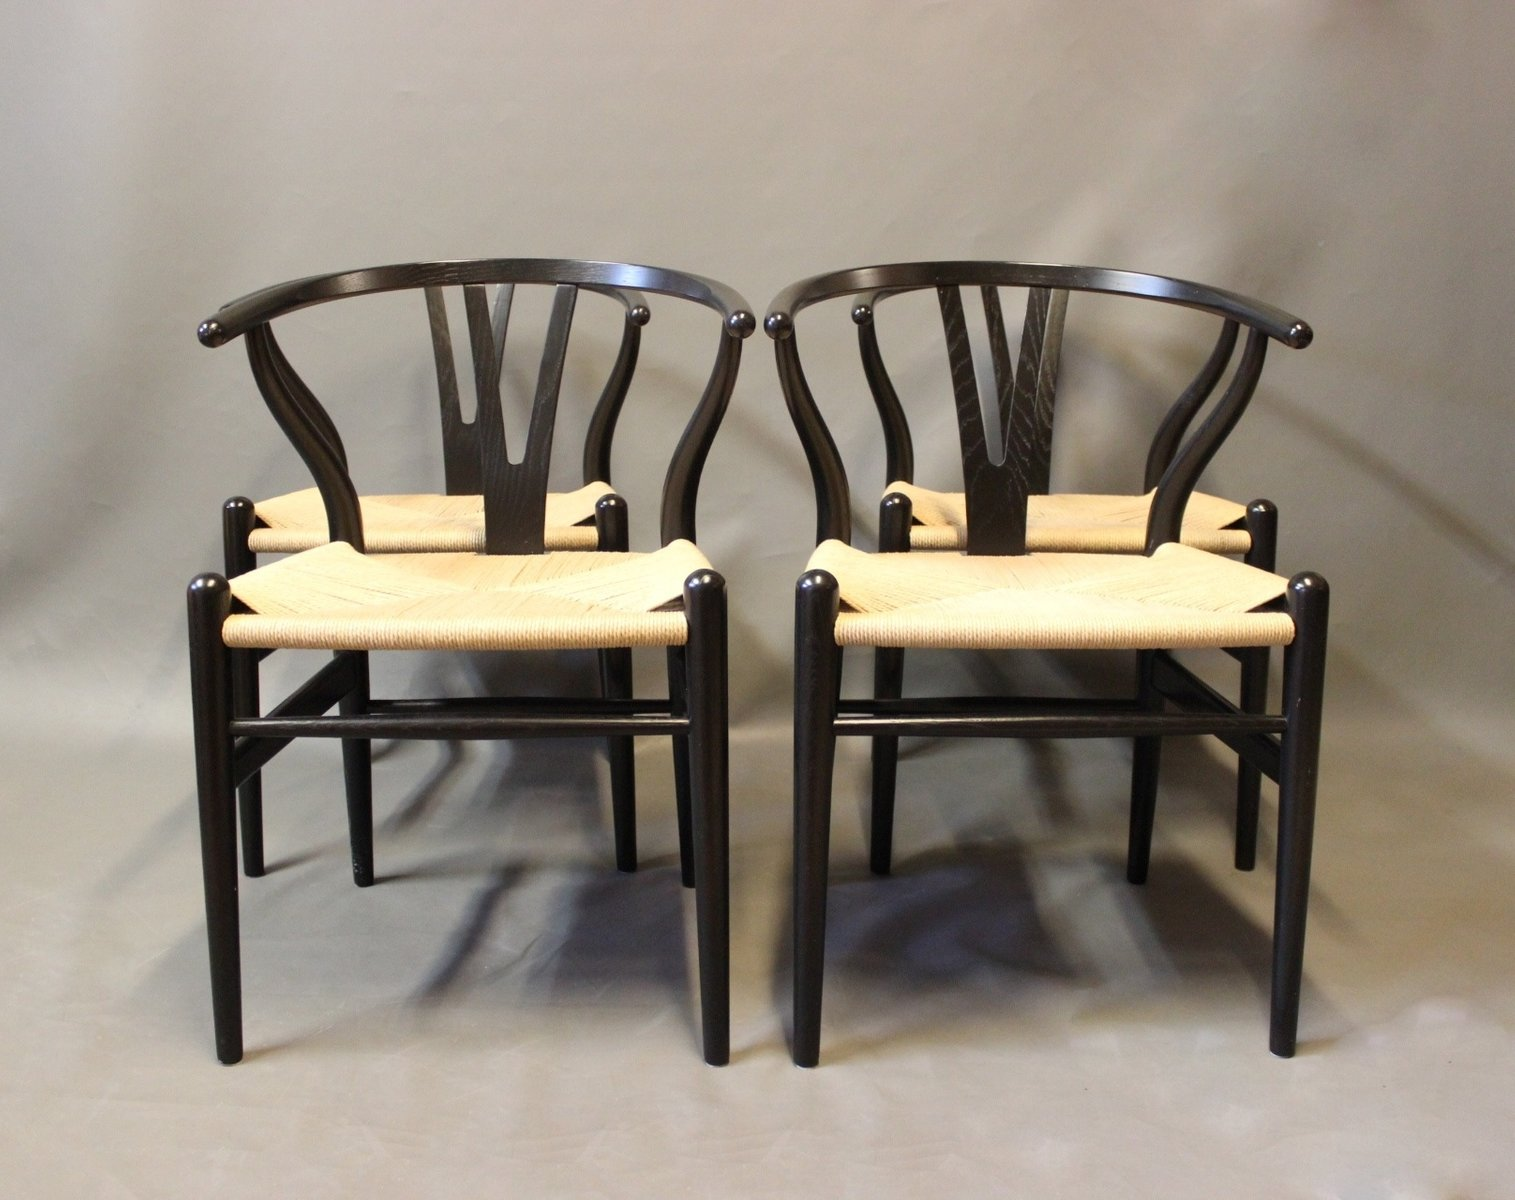 vintage modell ch24 y st hle von hans j wegner f r carl hansen son 4er set bei pamono kaufen. Black Bedroom Furniture Sets. Home Design Ideas